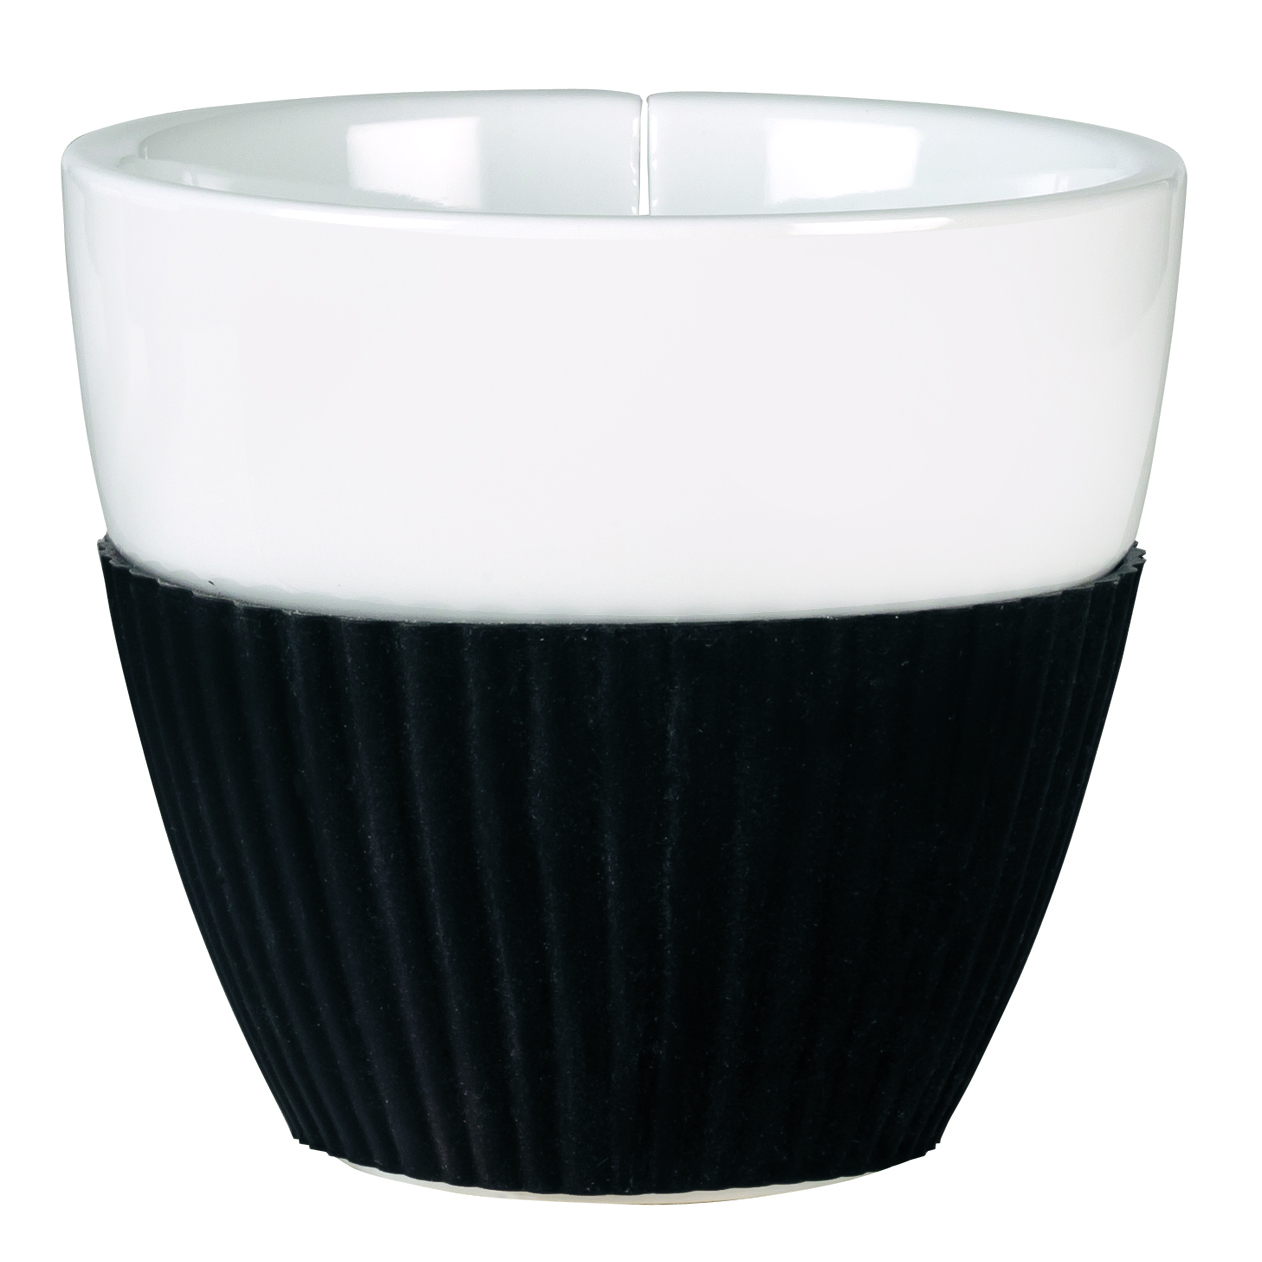 Libbey Glass VS25401 cups, china